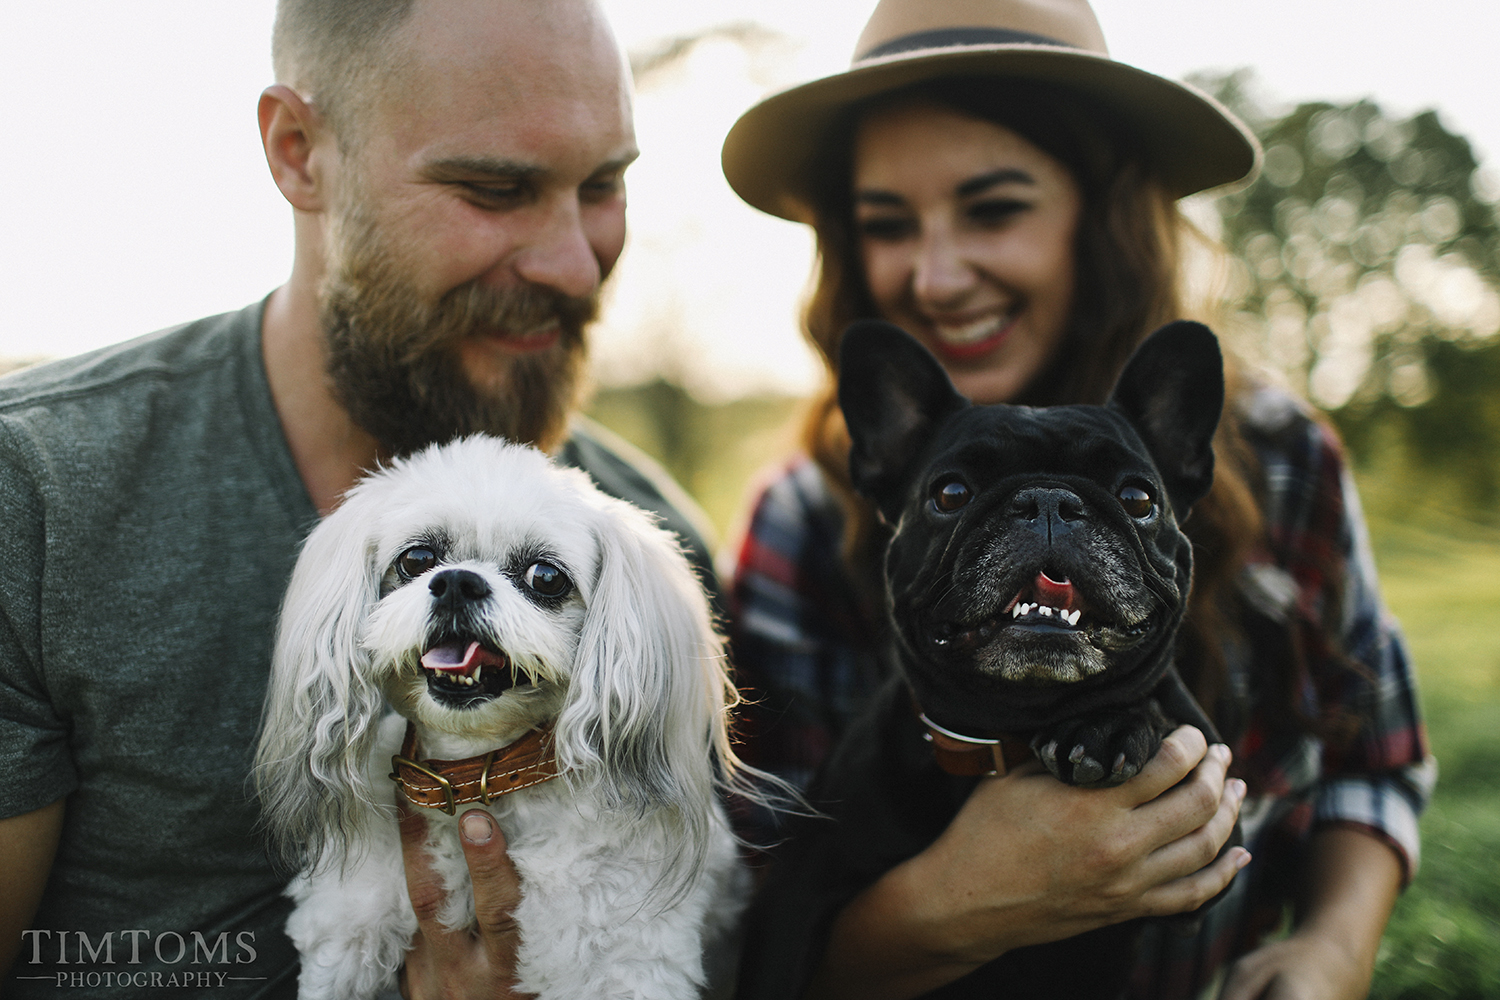 Engagement photography with puppies dogs